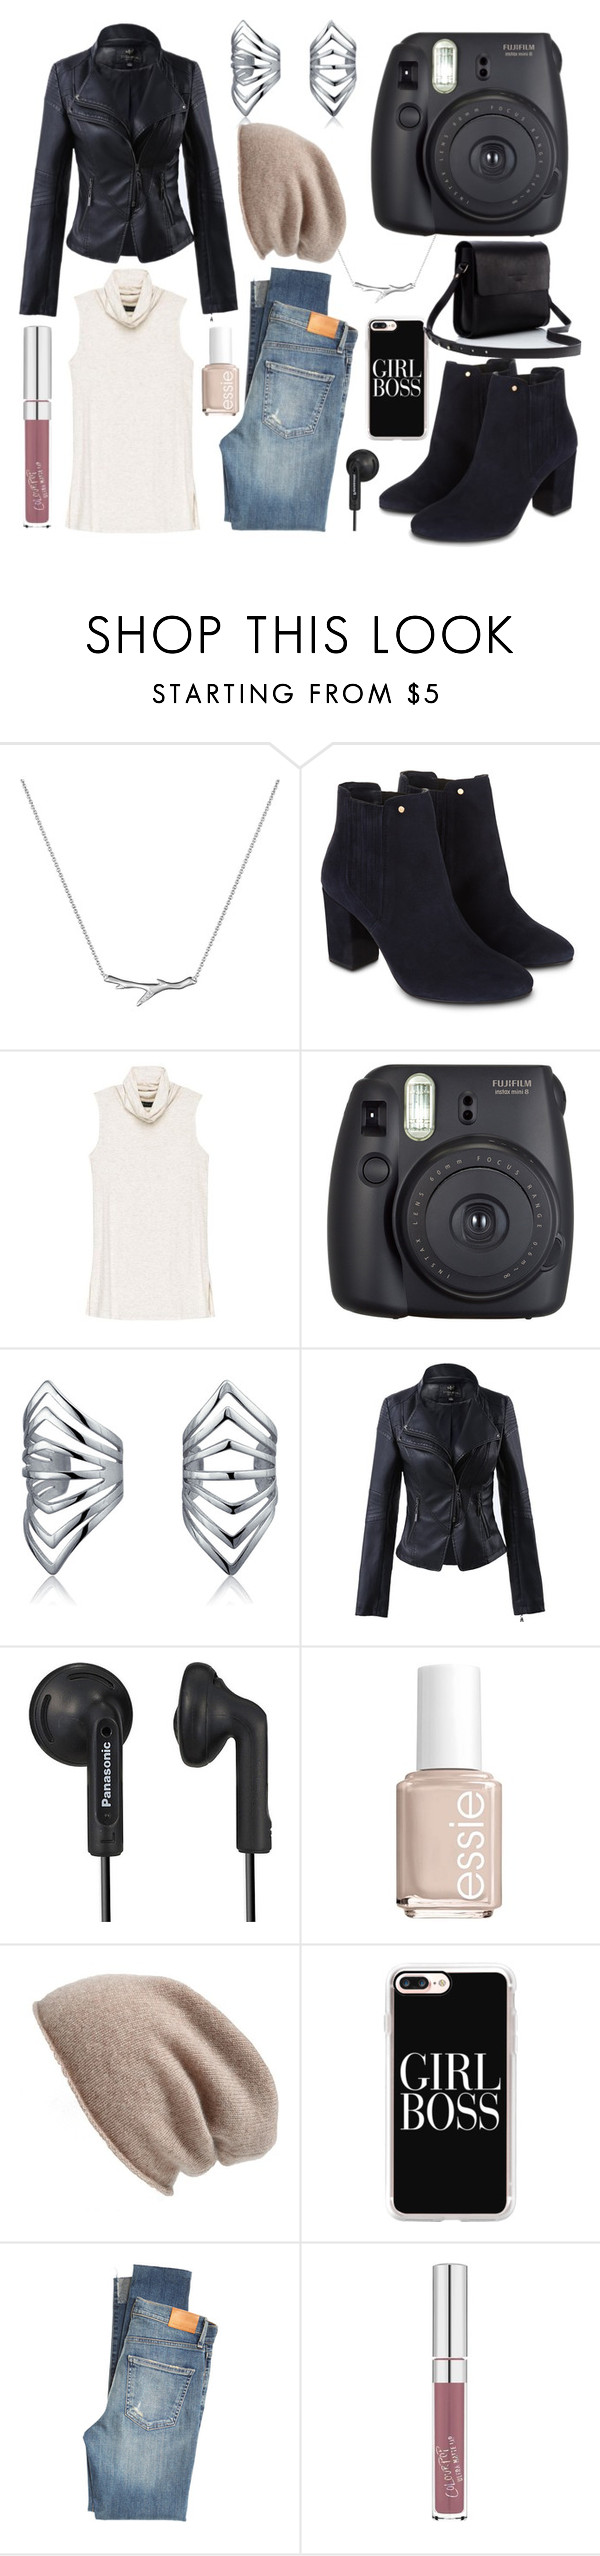 """""""New Year, New Changes!"""" by avenueg ❤ liked on Polyvore featuring Shaun Leane, Monsoon, Bobeau, Fuji, Bling Jewelry, Panasonic, Essie, Halogen, Casetify and Citizens of Humanity"""